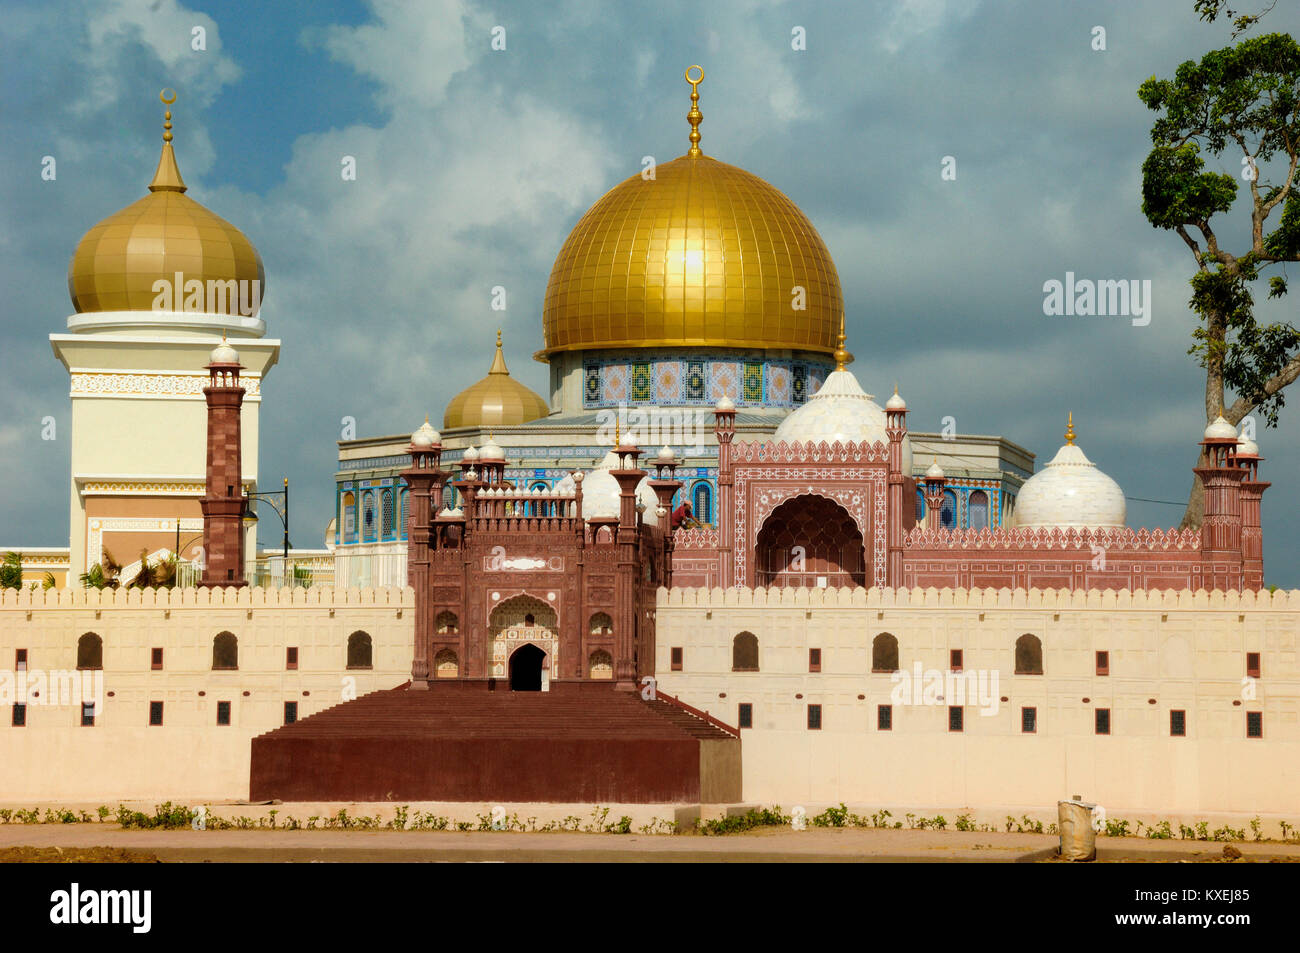 Scale Models or Replicas of the Dome of the Rock, Jerusalem & Badshahi Mosque, Lahore, at the Islamic Heritage - Stock Image